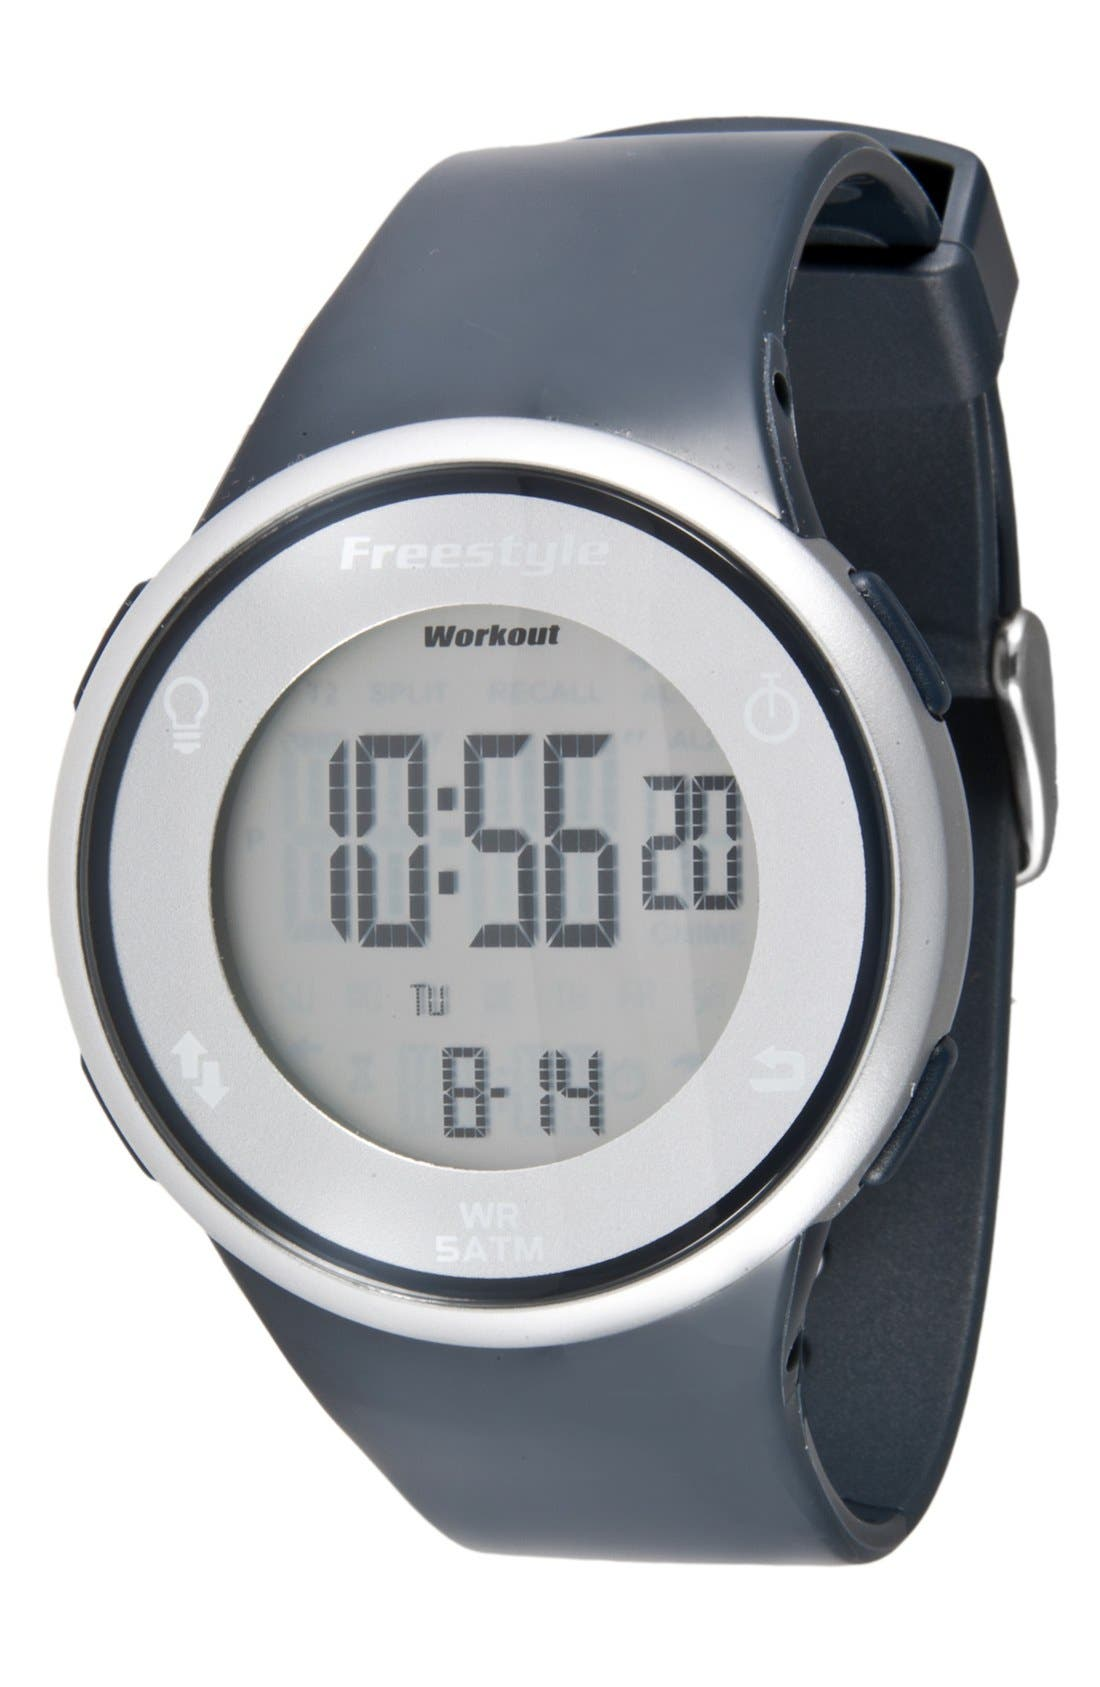 Alternate Image 1 Selected - Freestyle 'Sprint' Digital Fitness Watch, 45mm